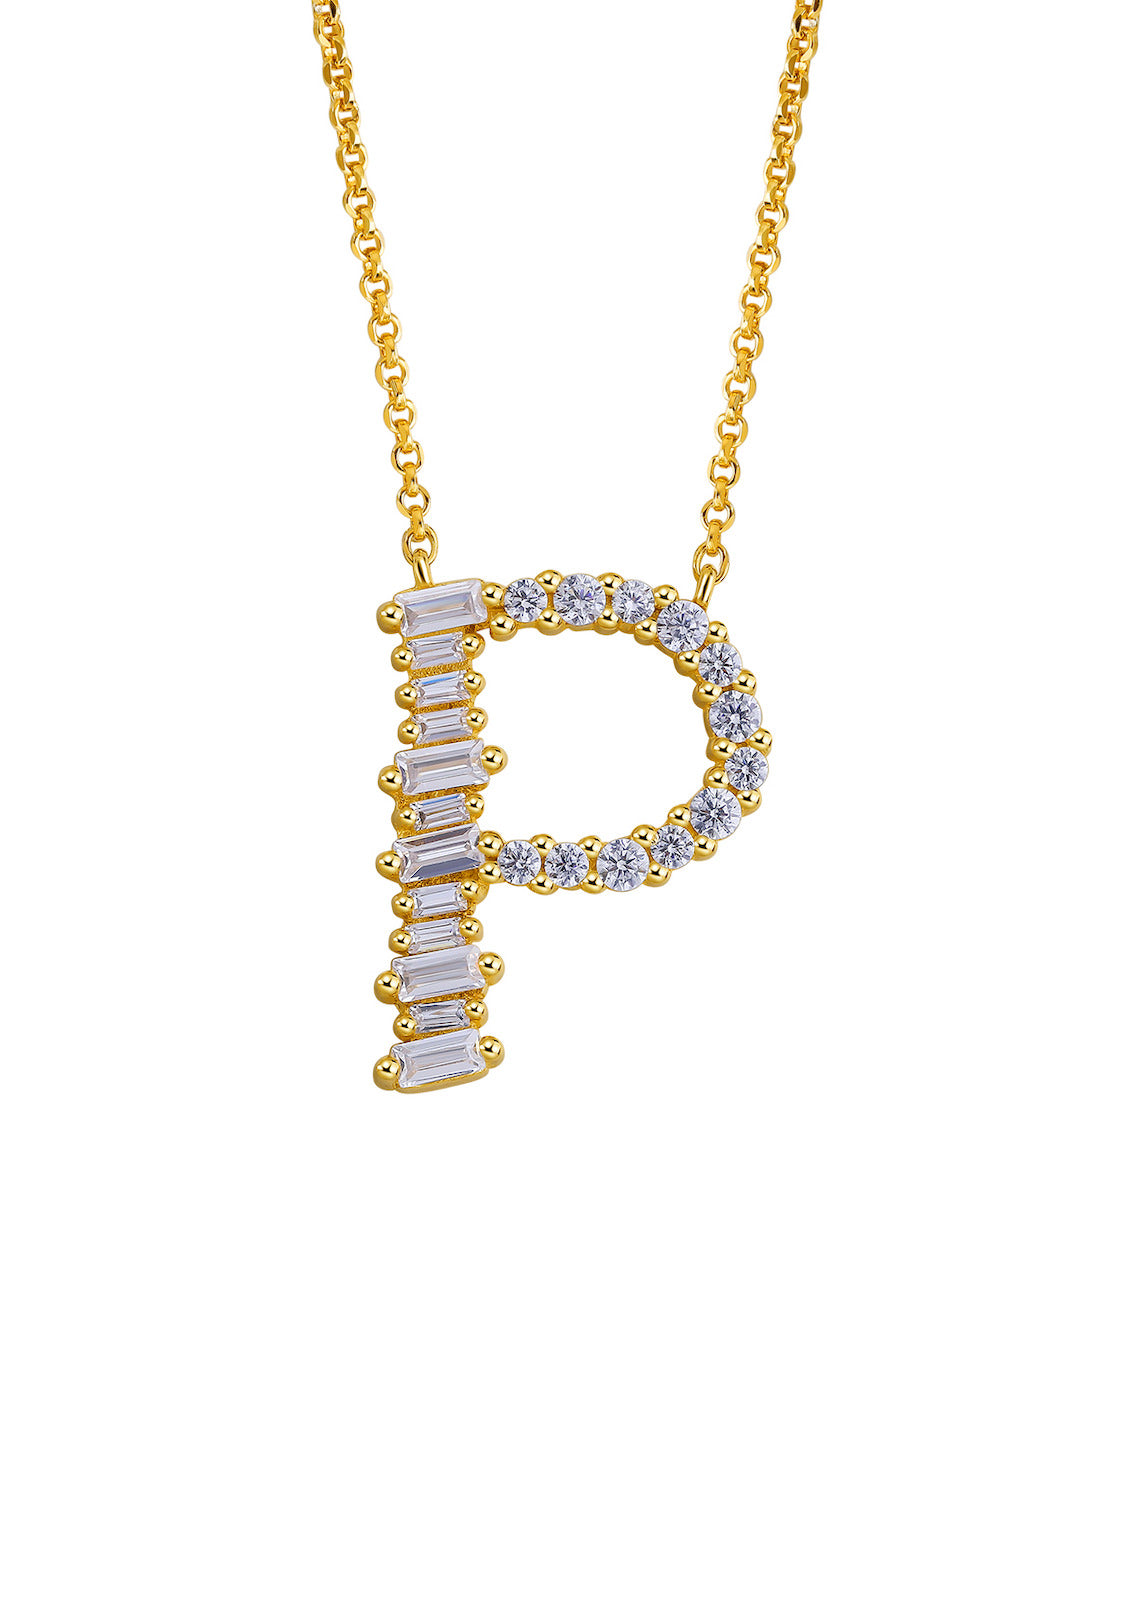 Gold Plated Sterling Silver Initial Necklace - Letter P Detail